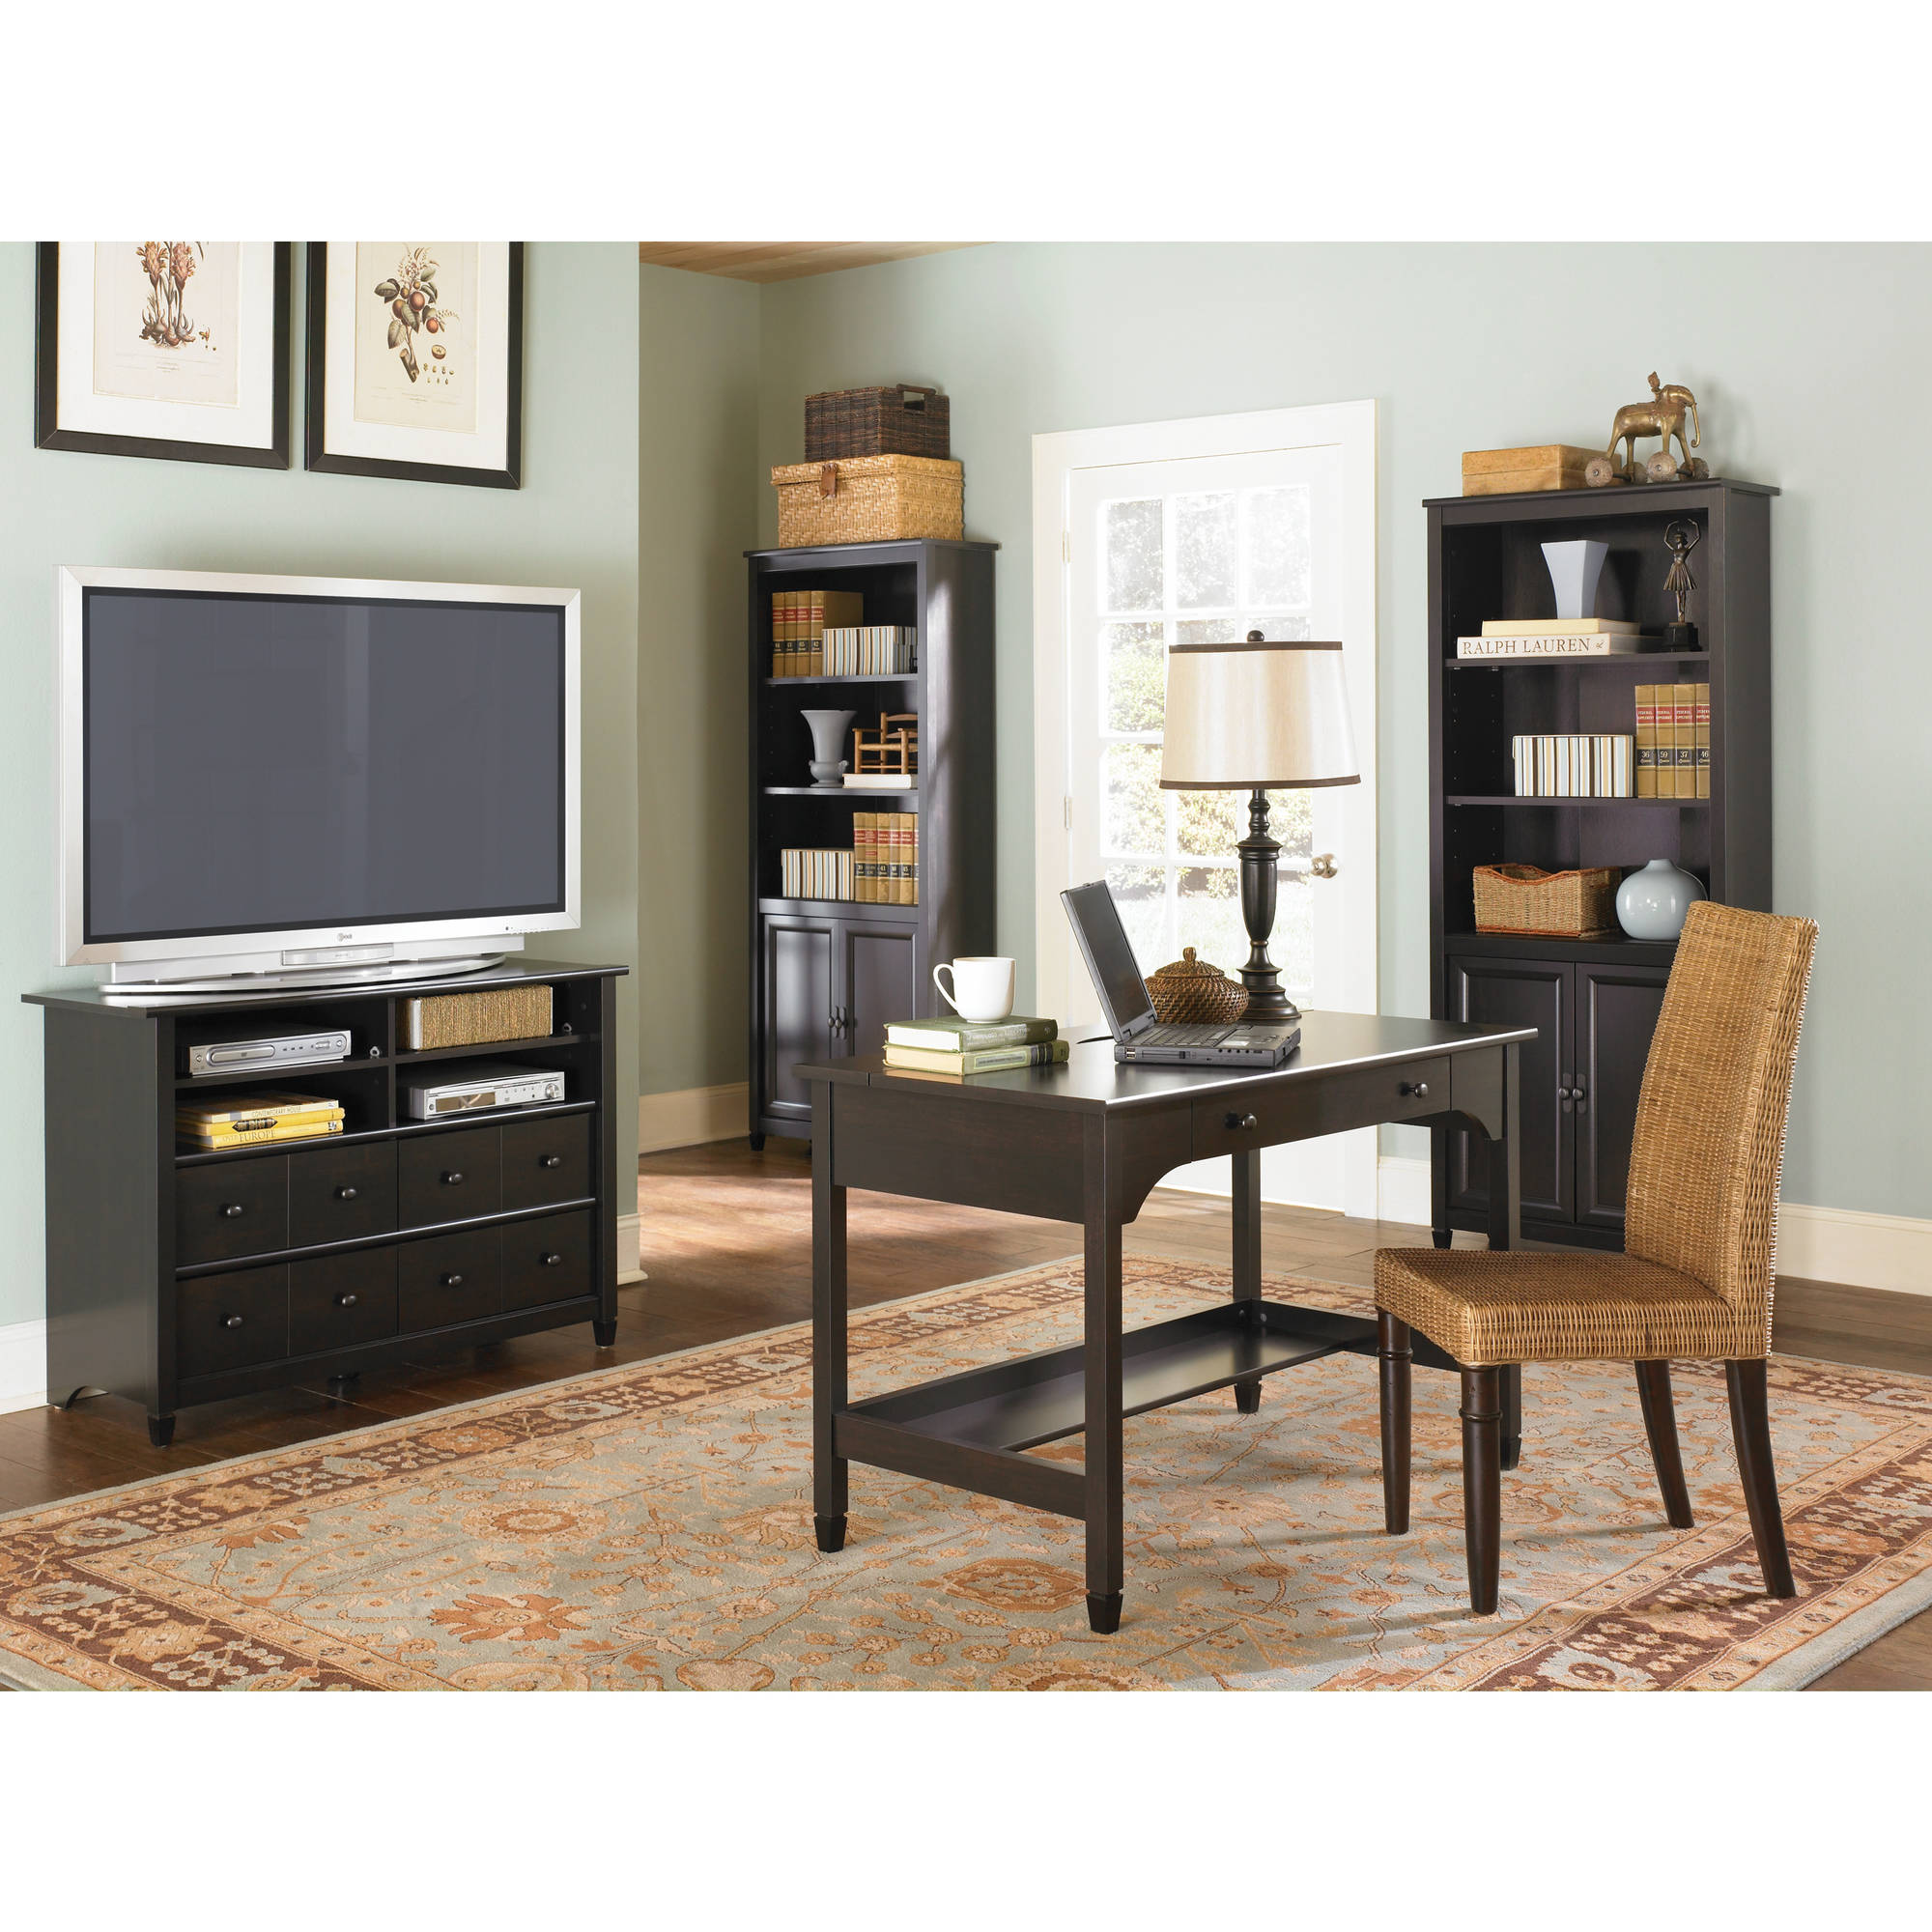 Sauder Edge Water Home Entertainment And Living Room